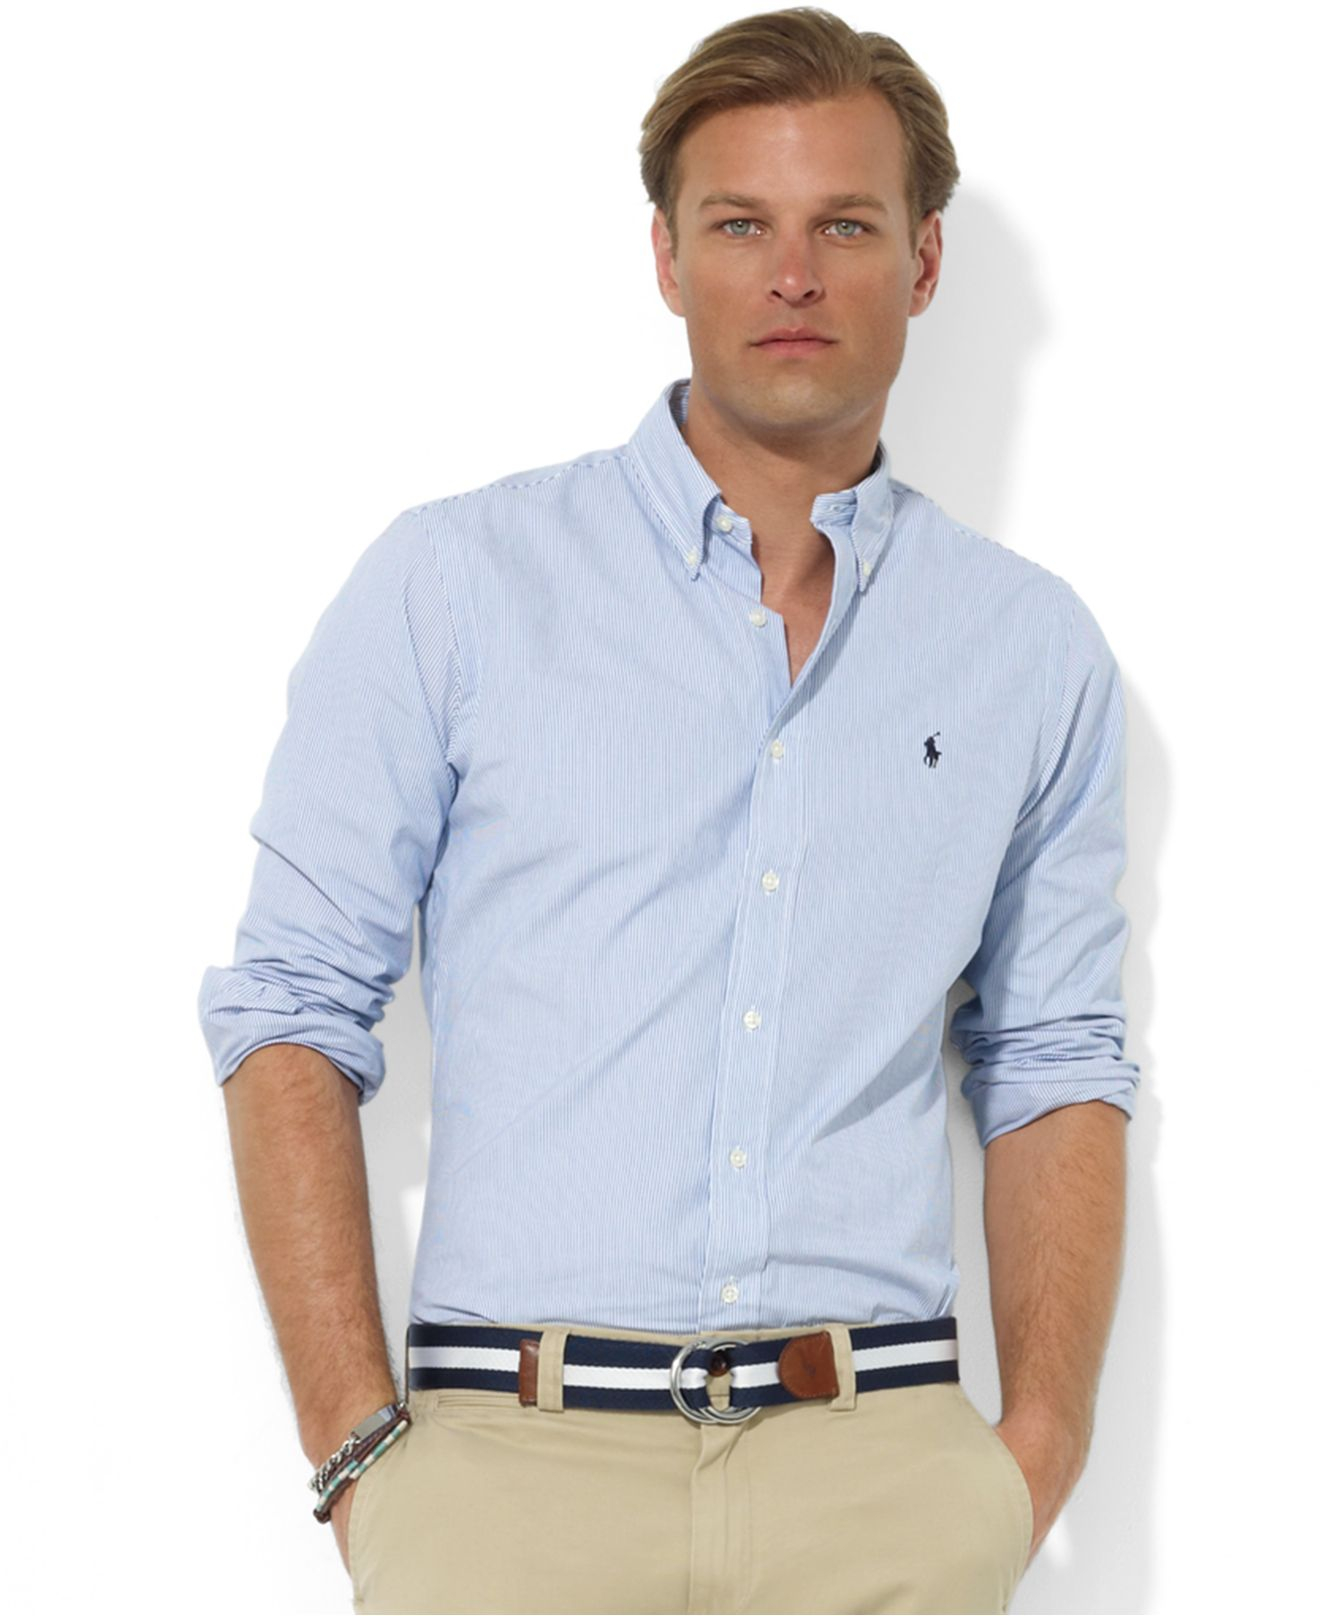 wholesale outlet new york retail prices Core Custom Fit Broadcloath Dress Shirt